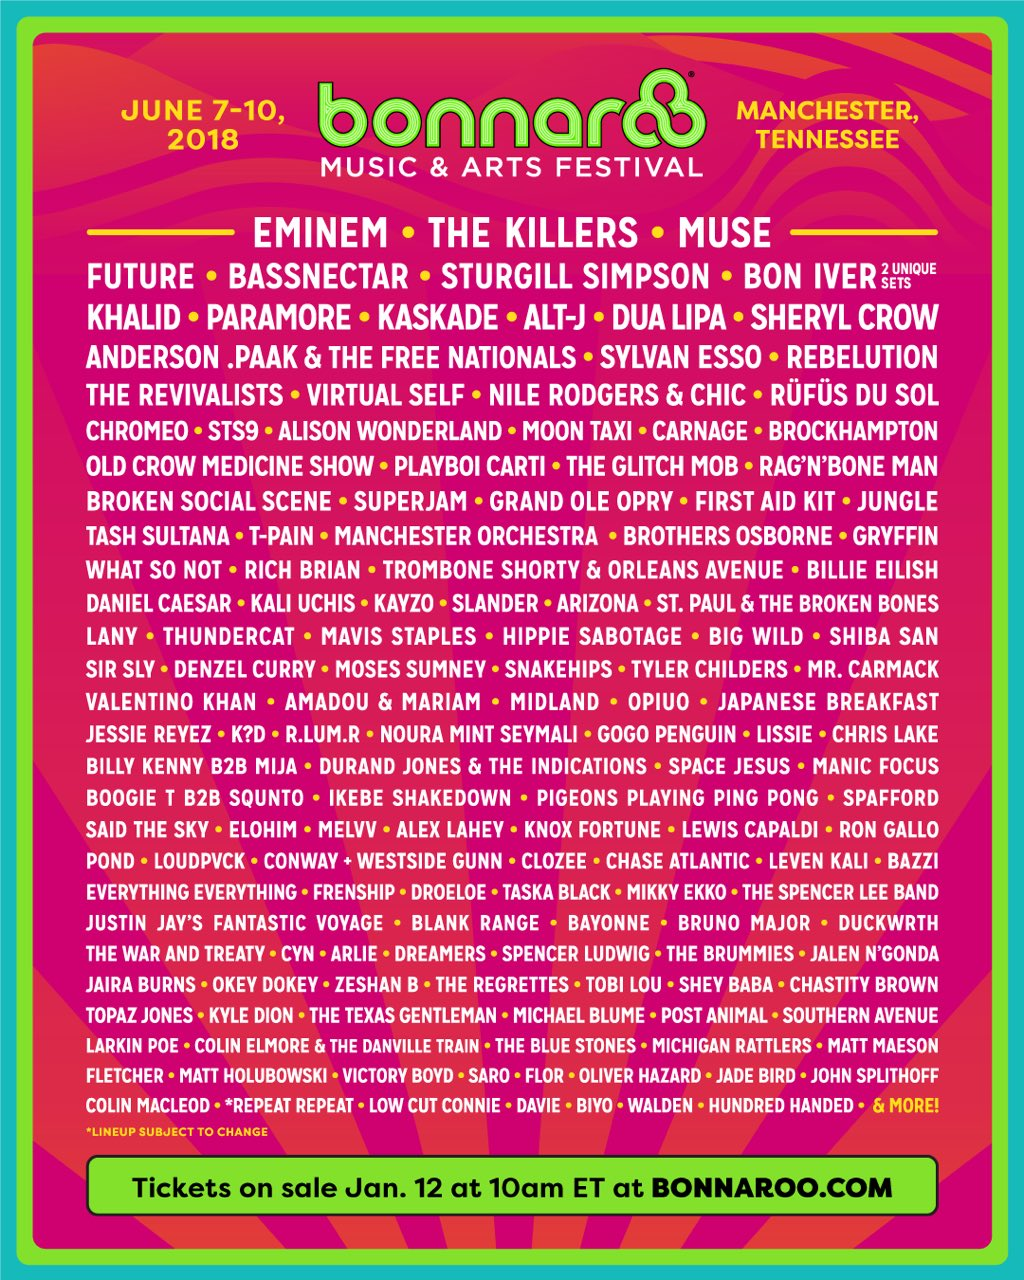 Bonnaroo! We're coming and we're bringing sternos! https://t.co/9WaRlJcHPj